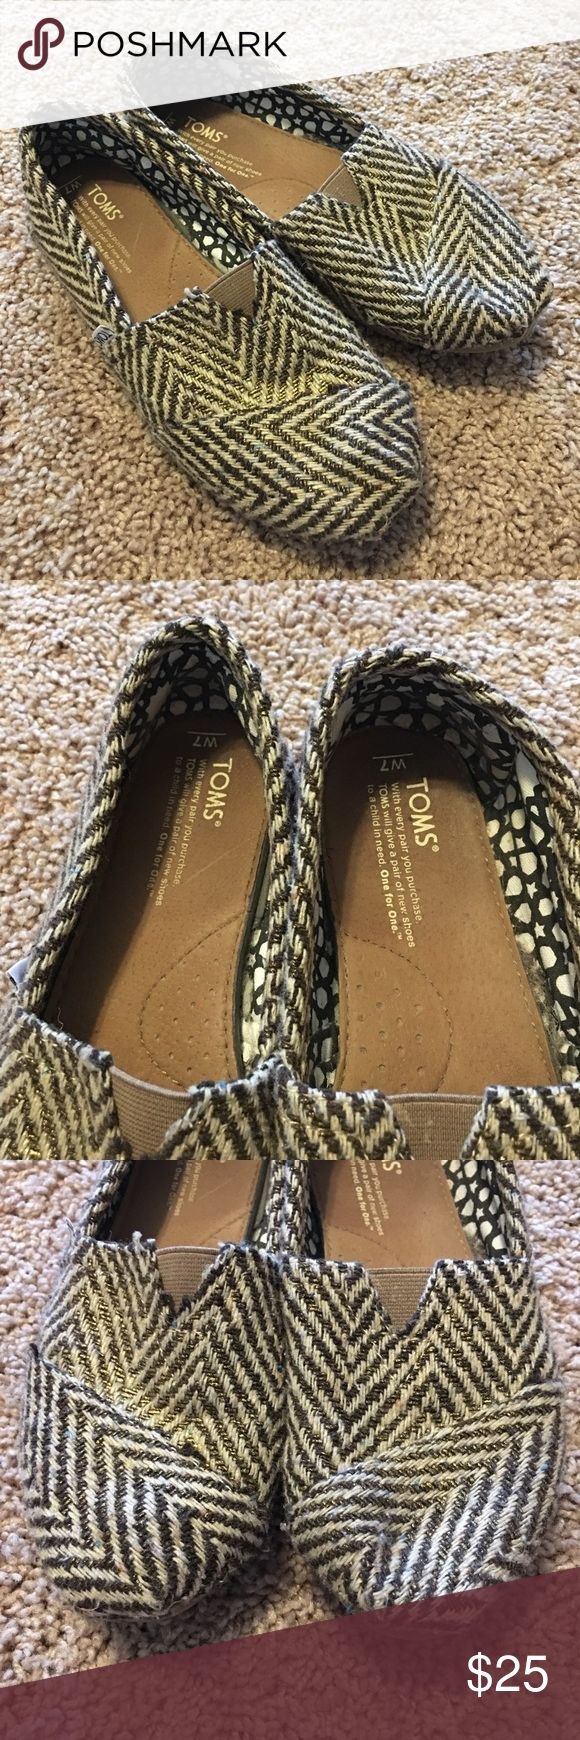 Sparkle Chevron Tom's GUC Good used condition Toms.  These are a sparkly brown/good chevron.  No box available. Toms Shoes Flats & Loafers